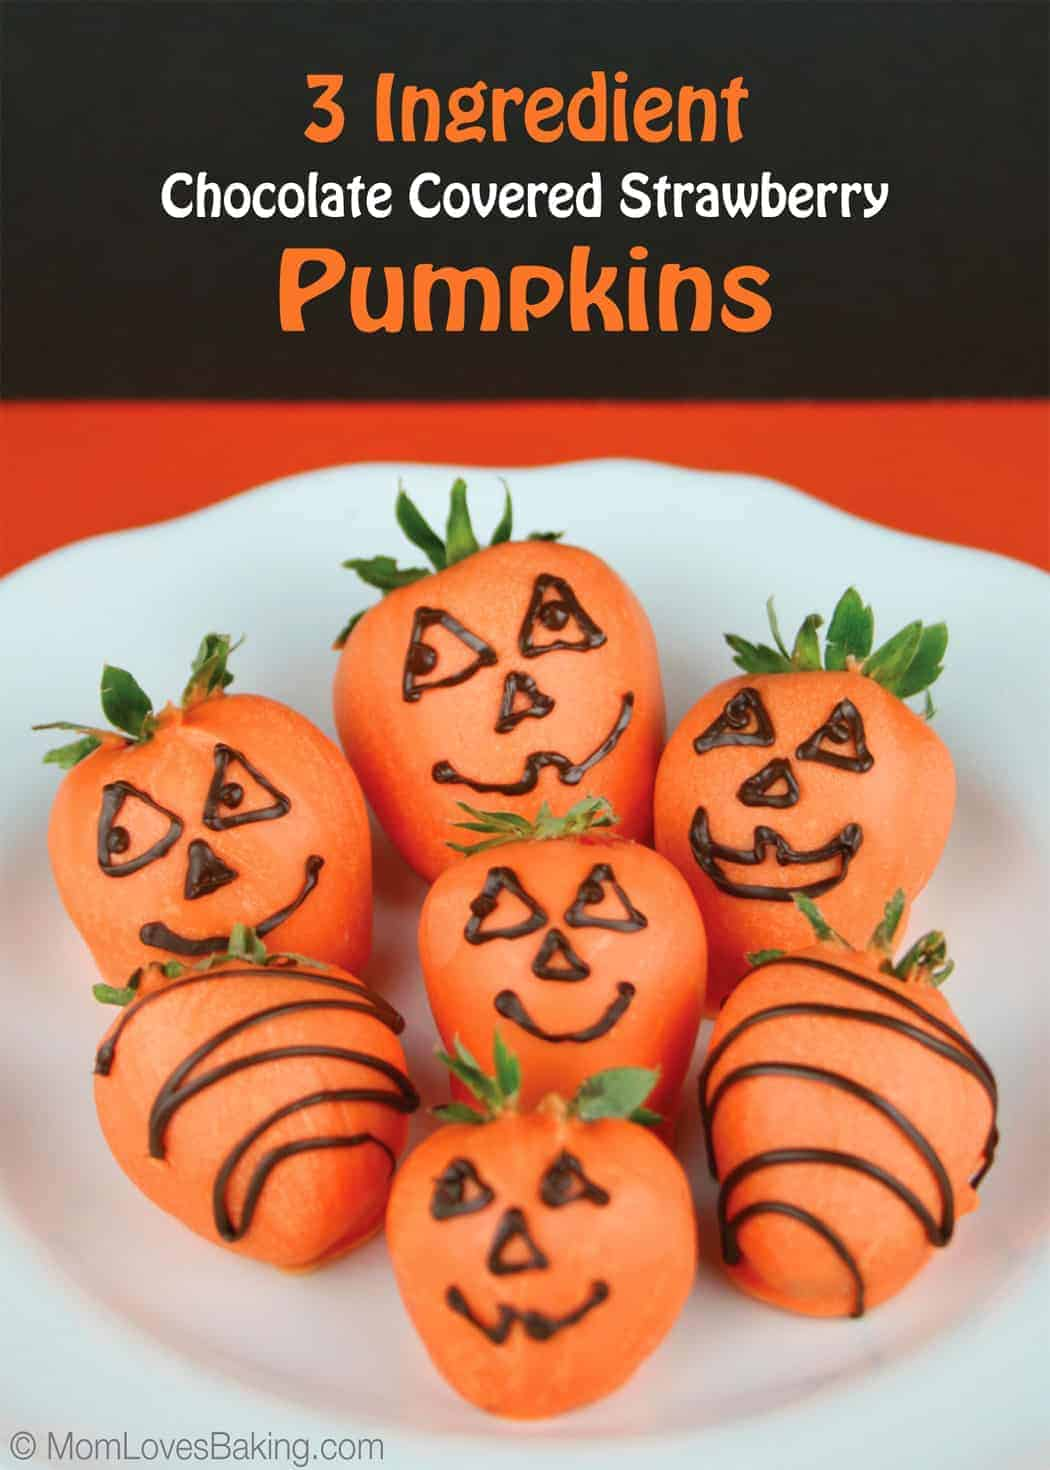 PumpkinStrawberries